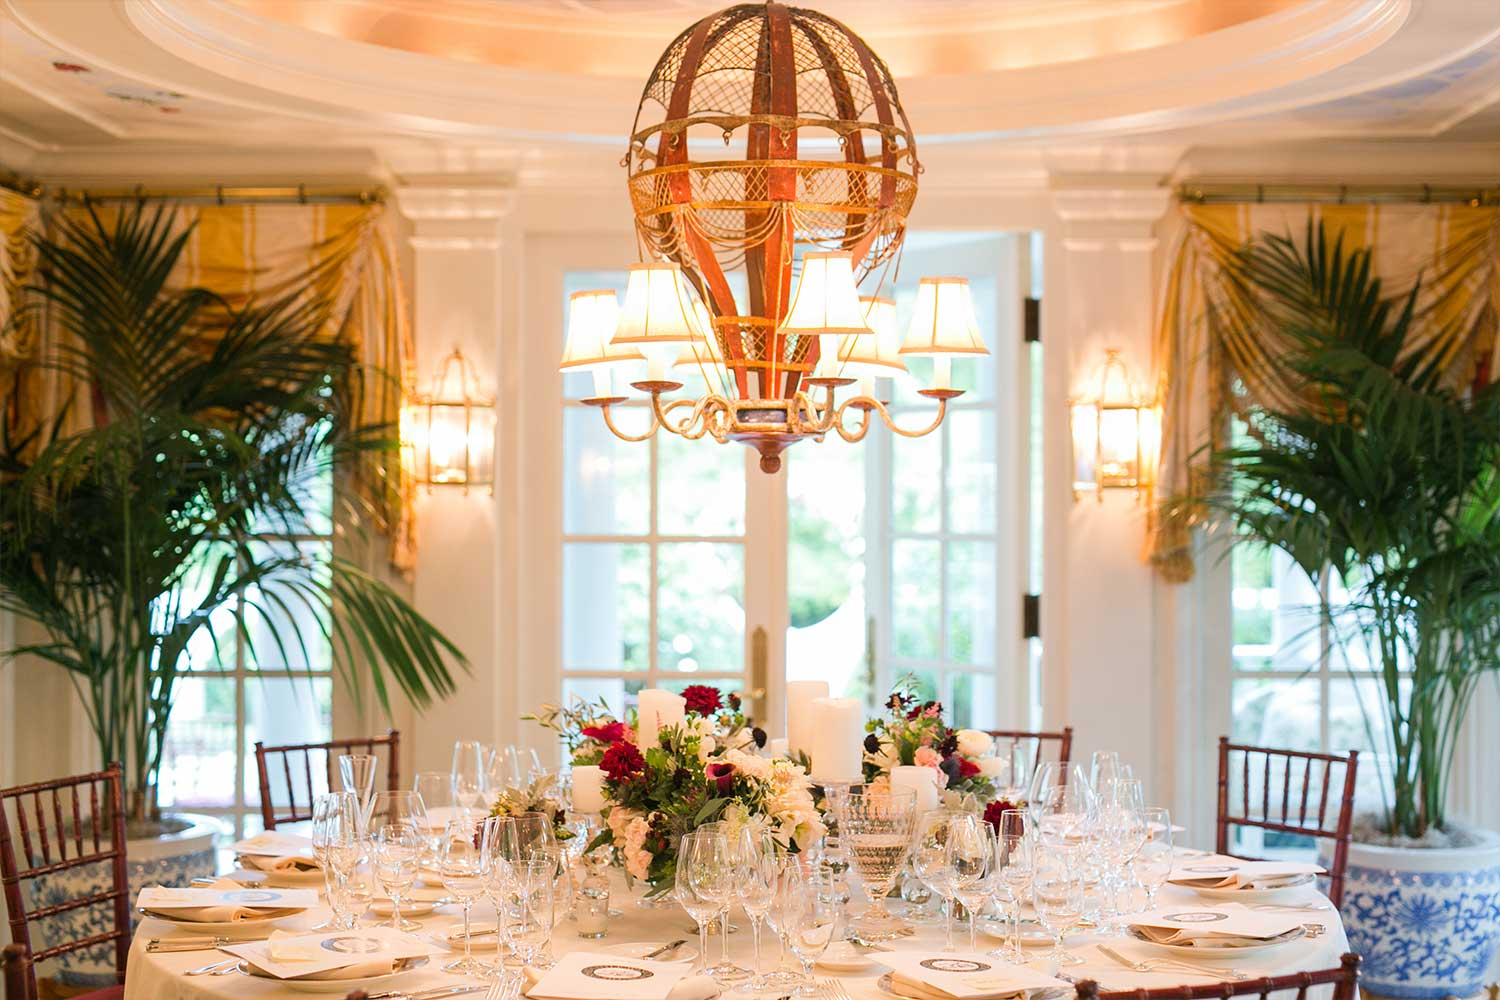 The dining room of the Claiborne House. A circular dining table surrounded by floor to ceiling windows overlooking a private garden. A chandelier in the shape of a hot air balloon is overhead.